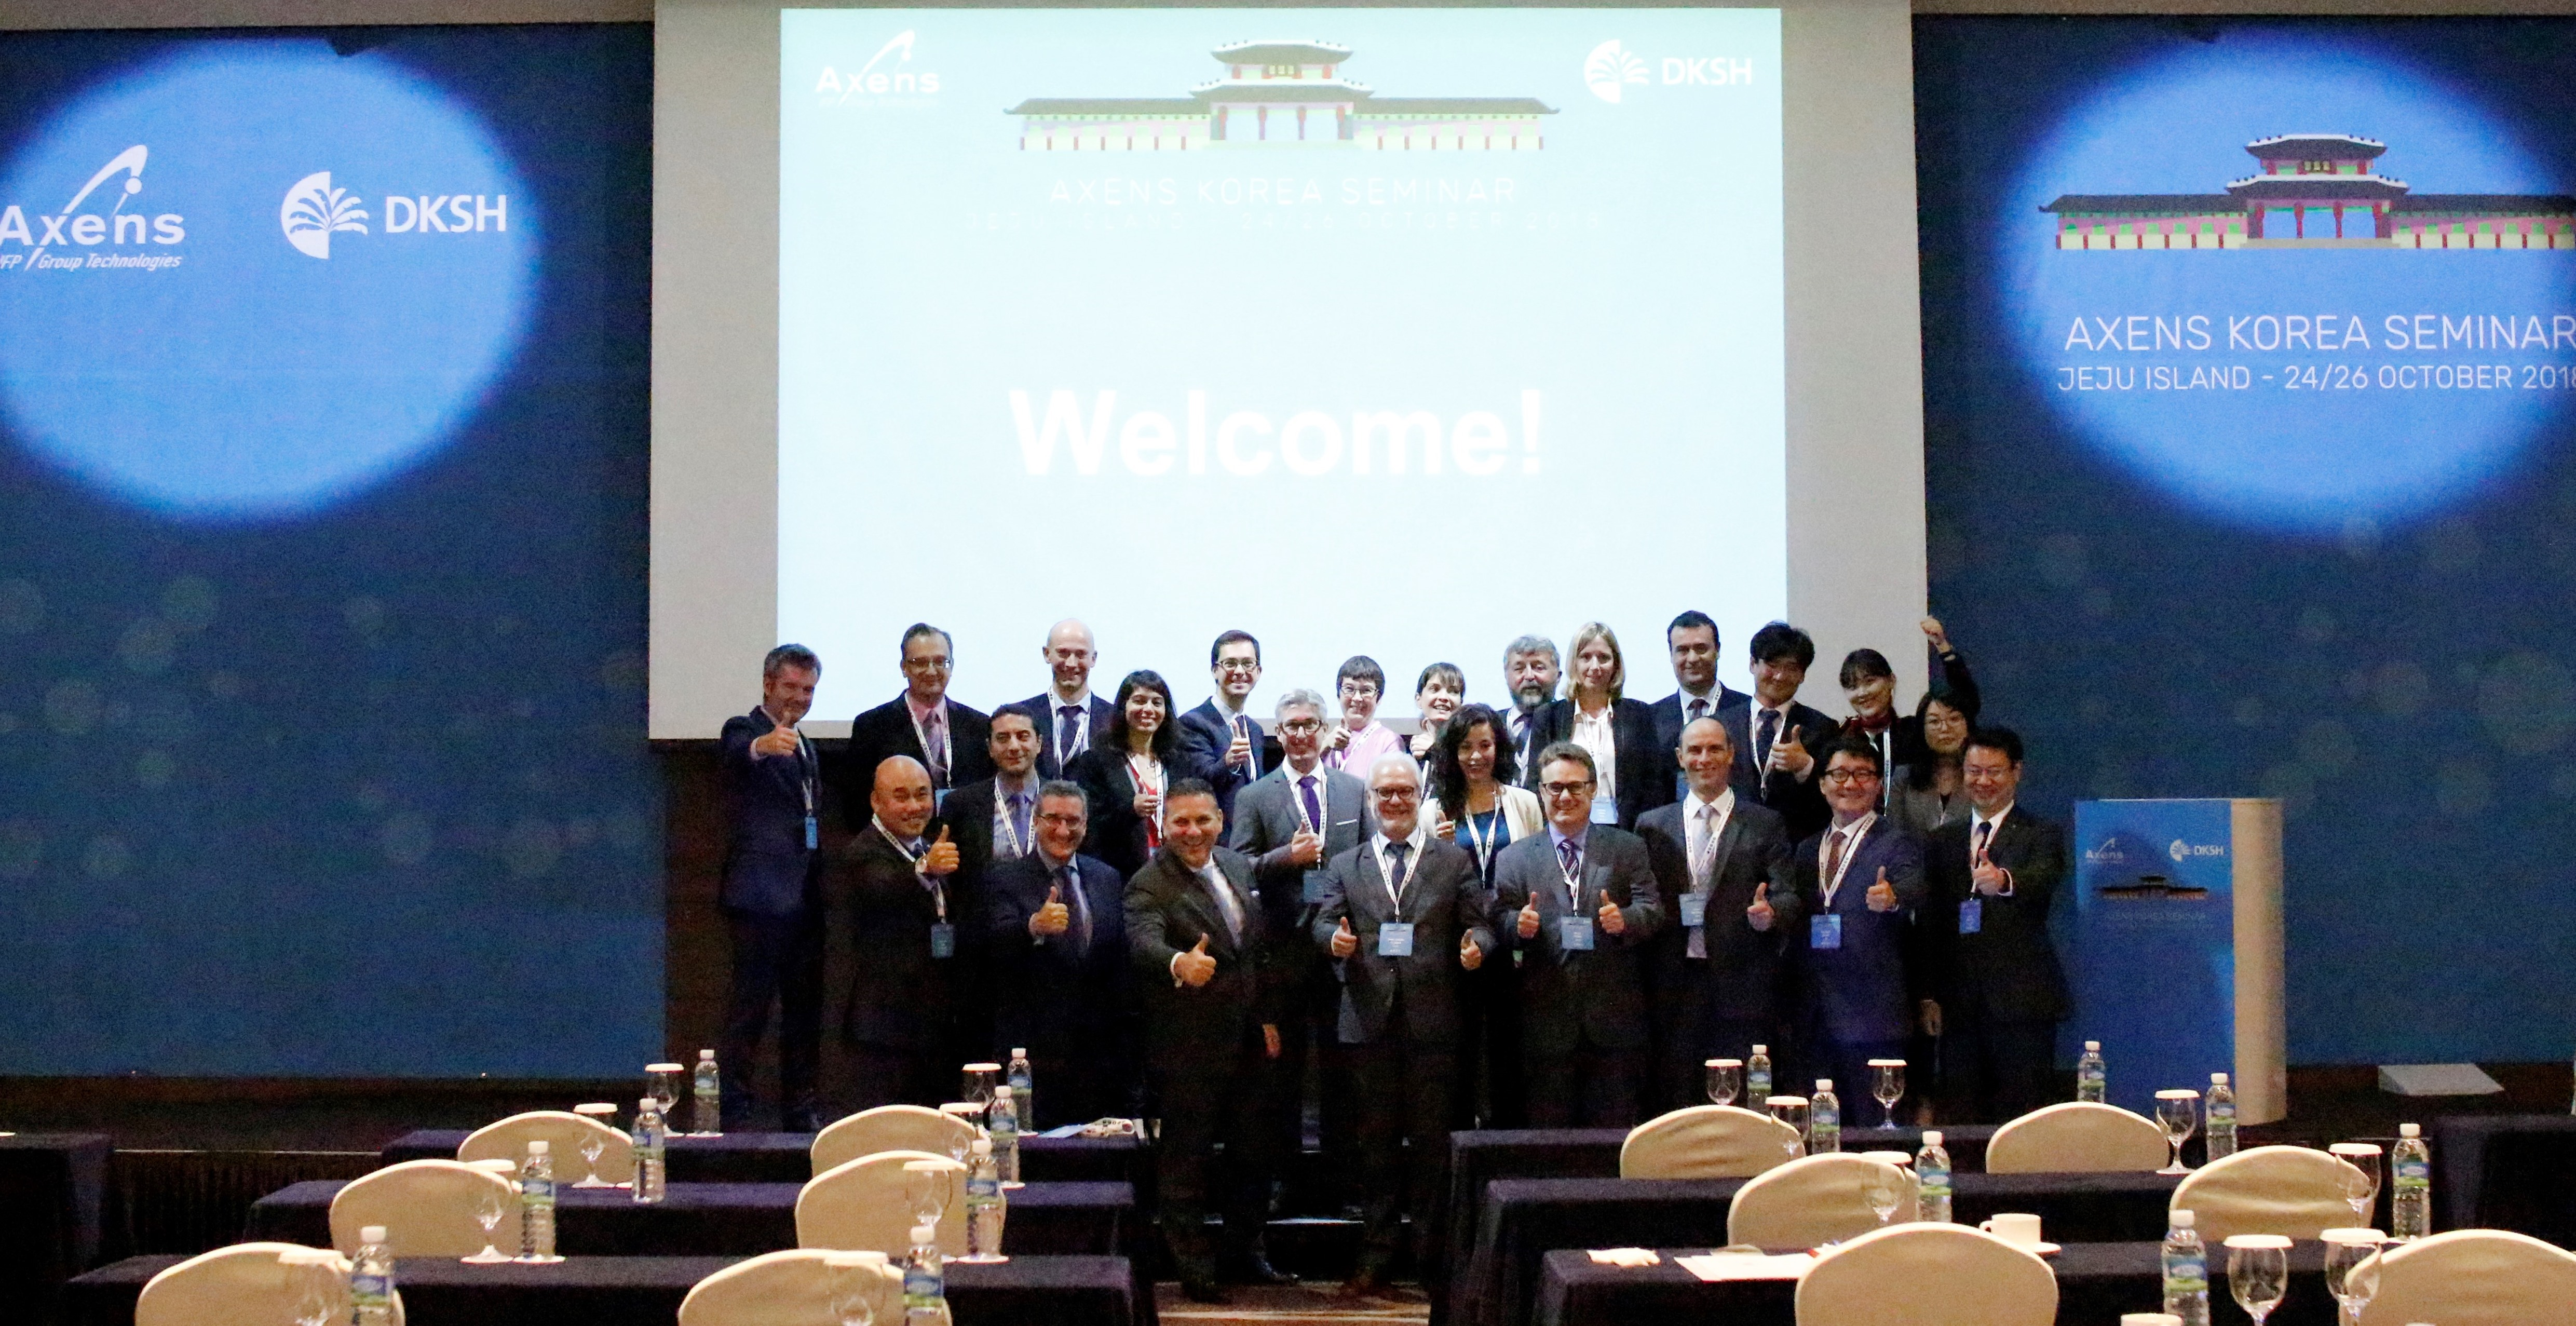 DKSH and Axens celebrate twelve successful years of partnership in Korea at third joint seminar